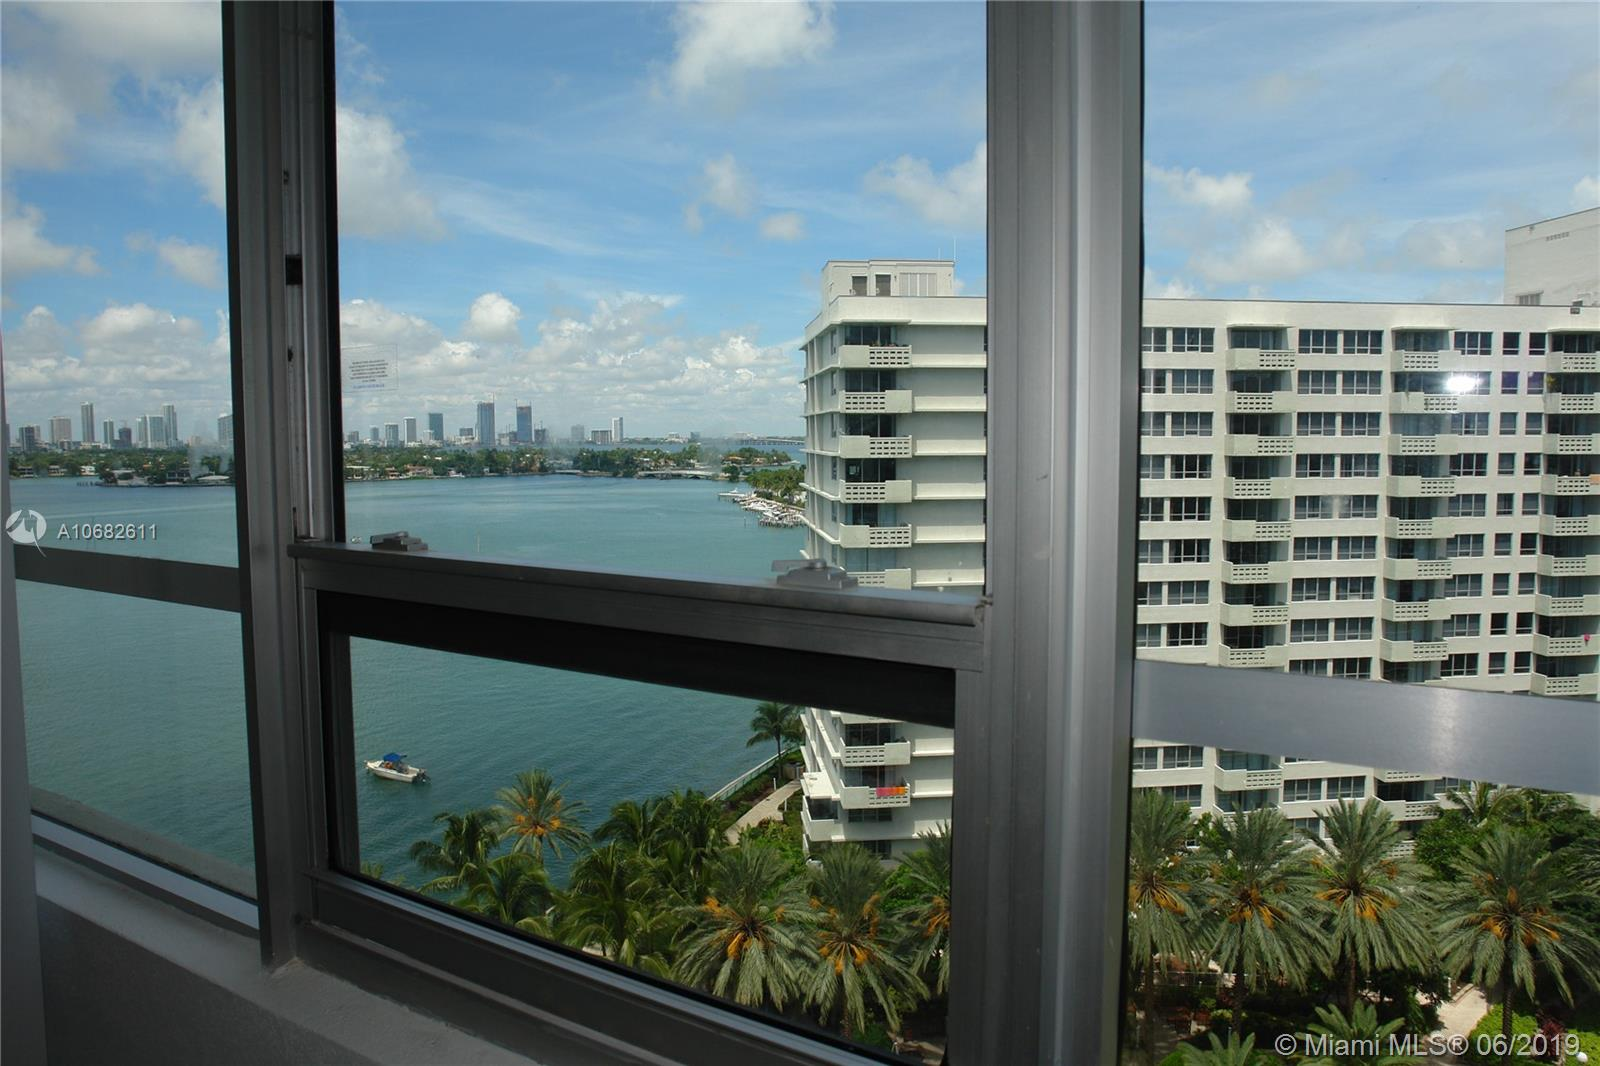 Flamingo South Beach #1244S - 1500 Bay Rd #1244S, Miami Beach, FL 33139